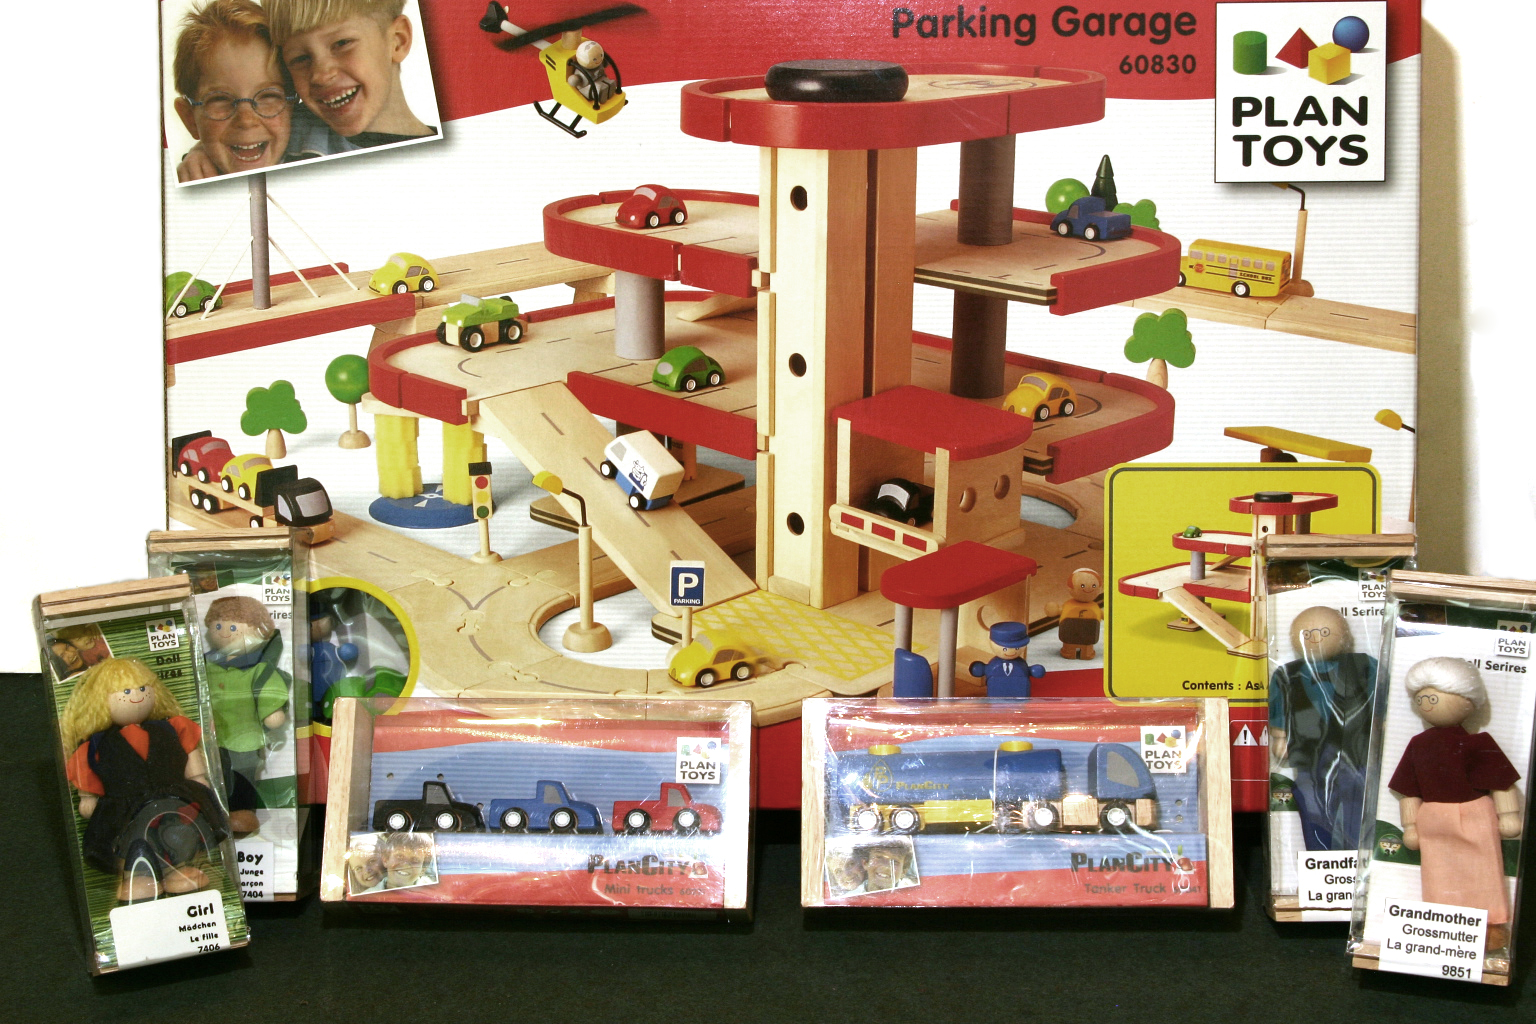 Plan Toys Garage : Plan toys parking garage pictures and ideas on meta networks